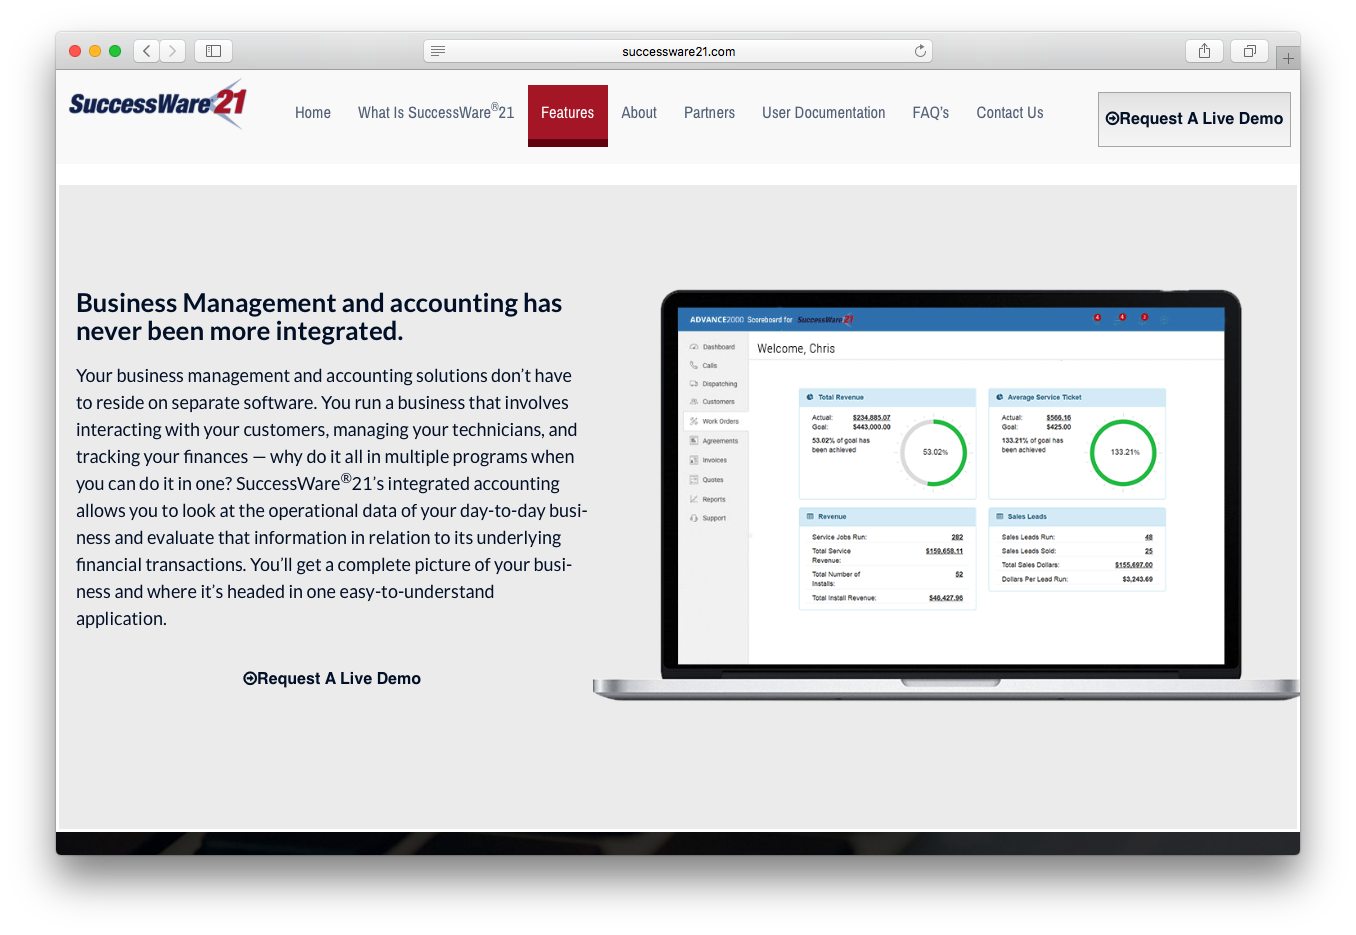 SuccessWare features business management accounting integrated